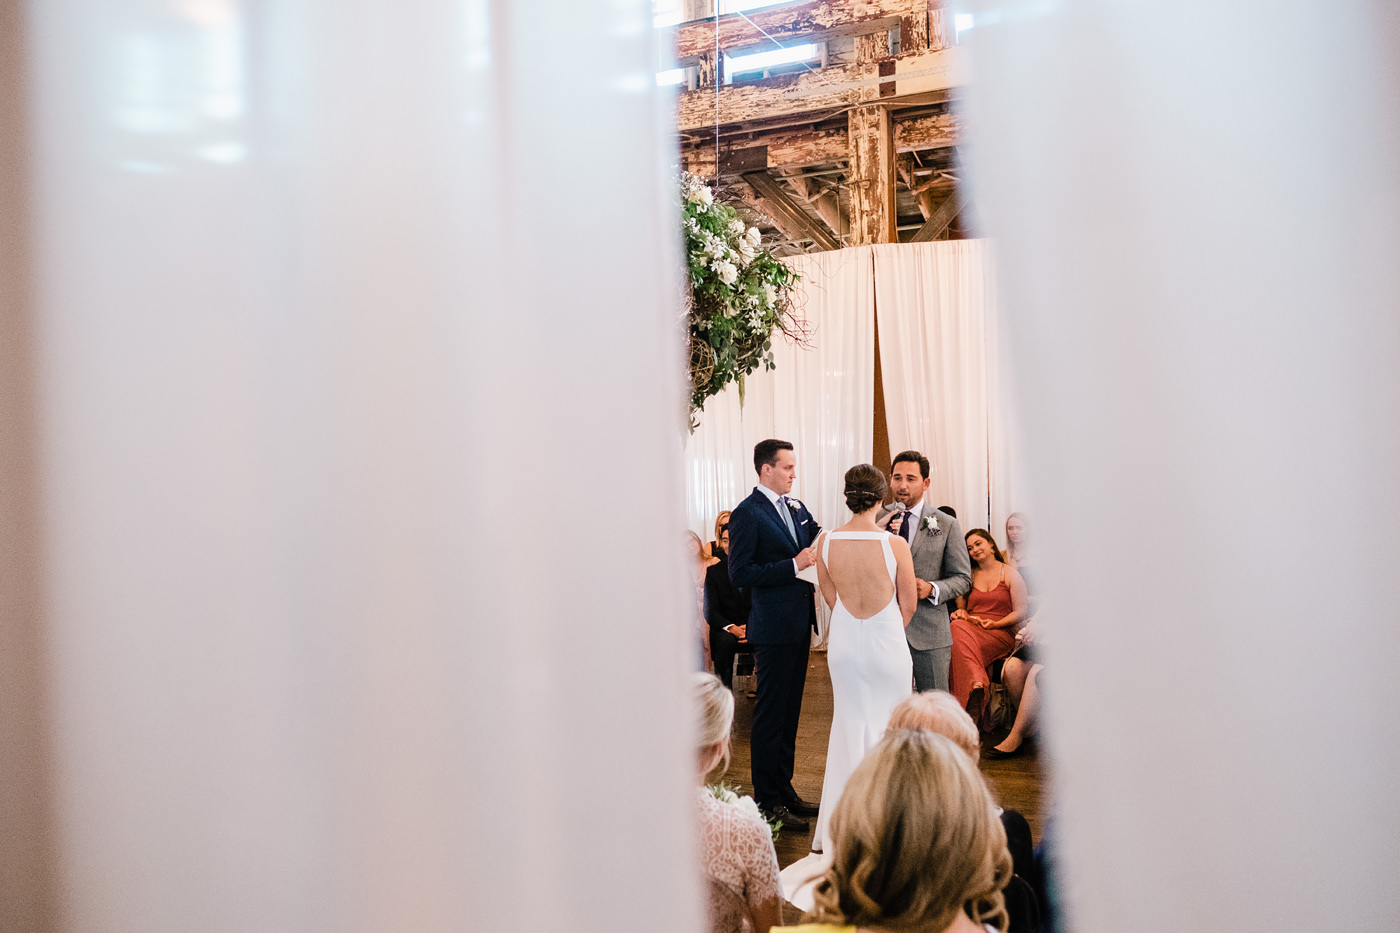 043-documentary--style-indoor-wedding-photos-at-sodo-park-by-herban-feast.jpg